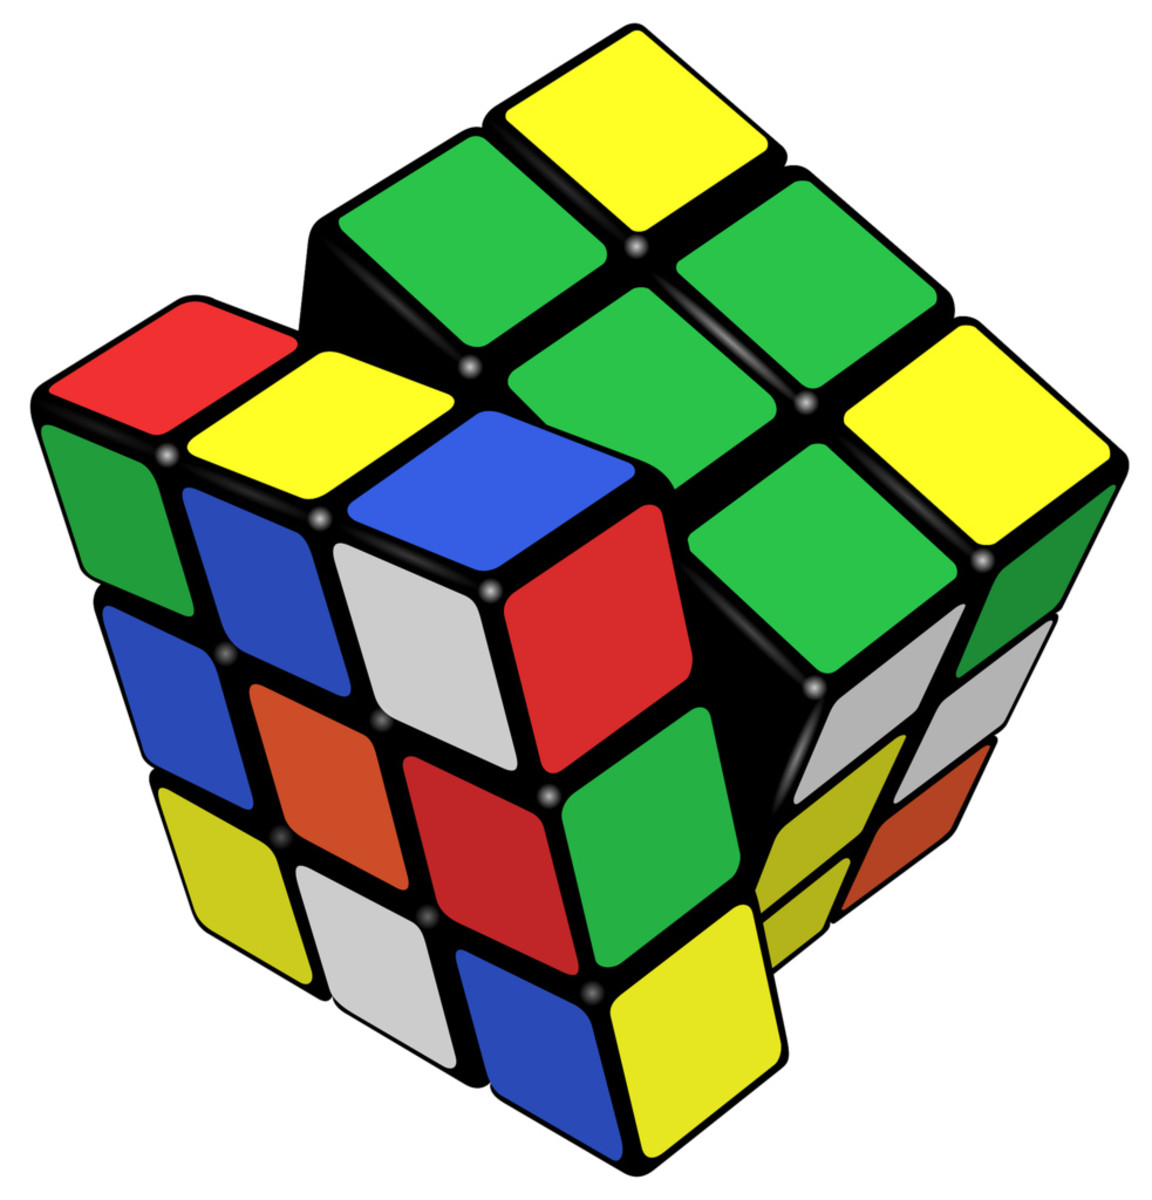 Rubik's Cube Fun Facts